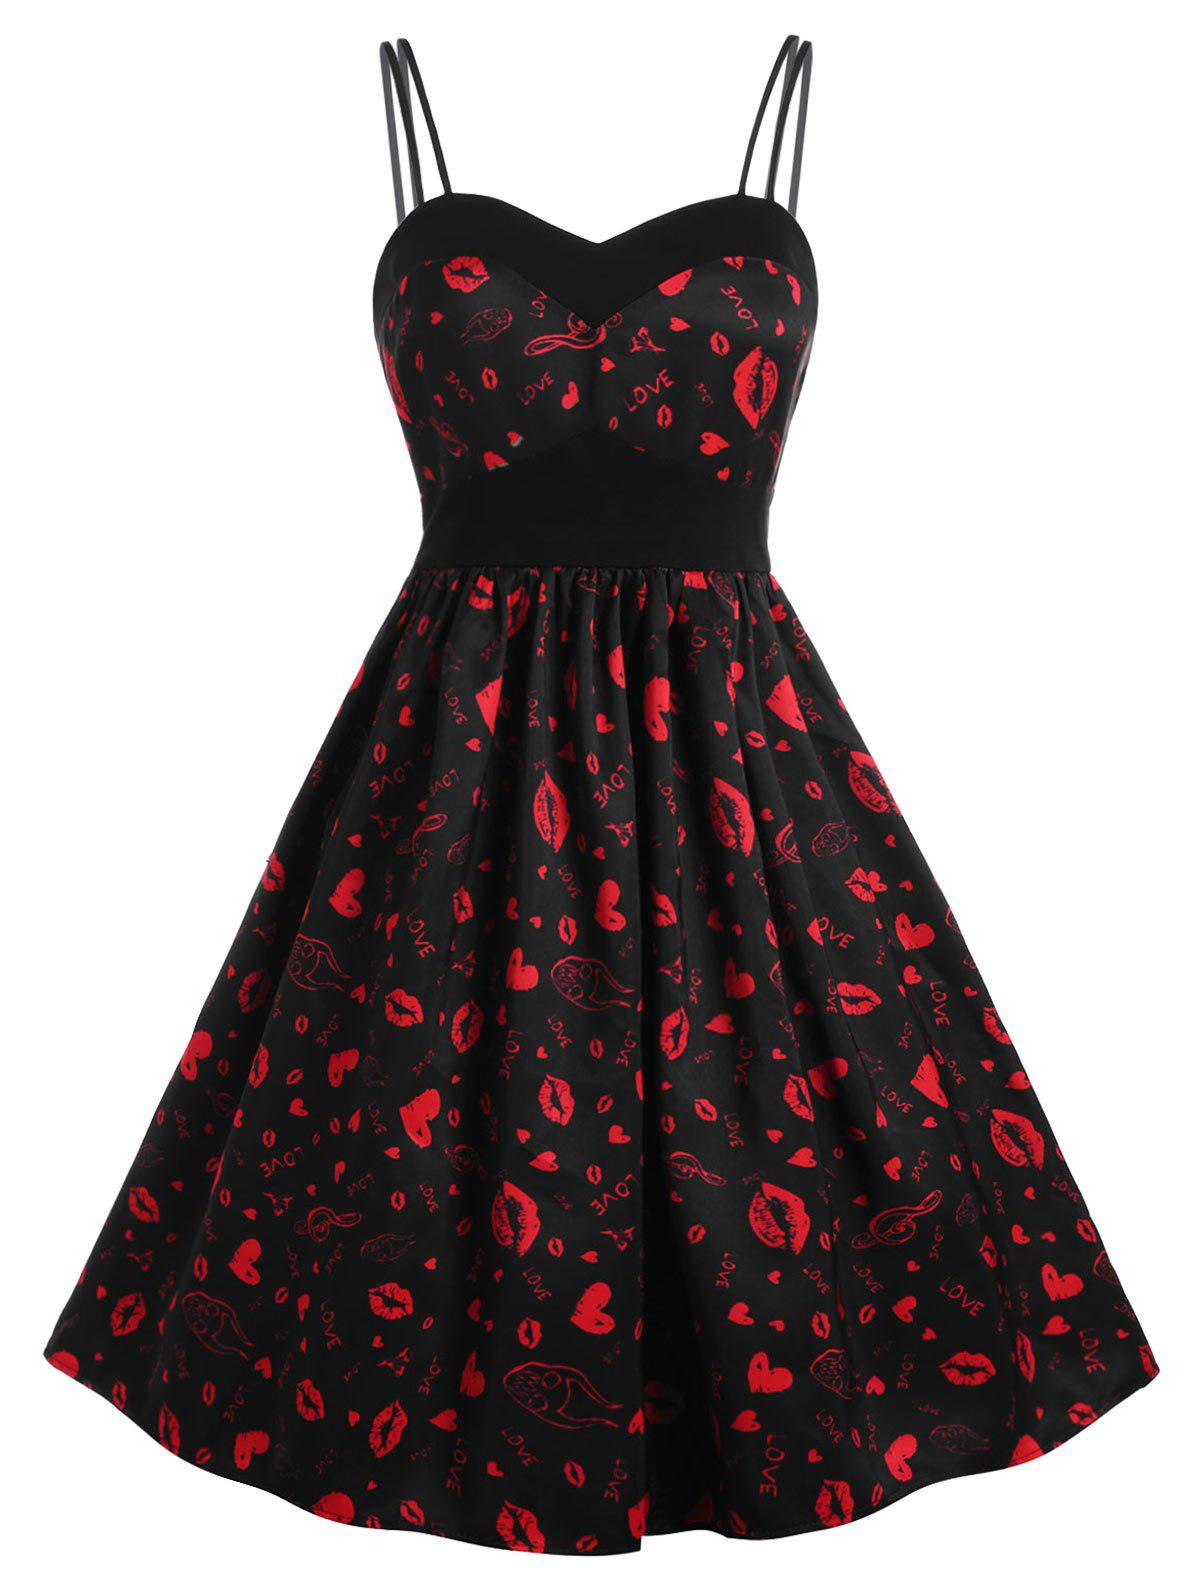 High Waist Spaghetti Strap Lips Print Dress - RED S